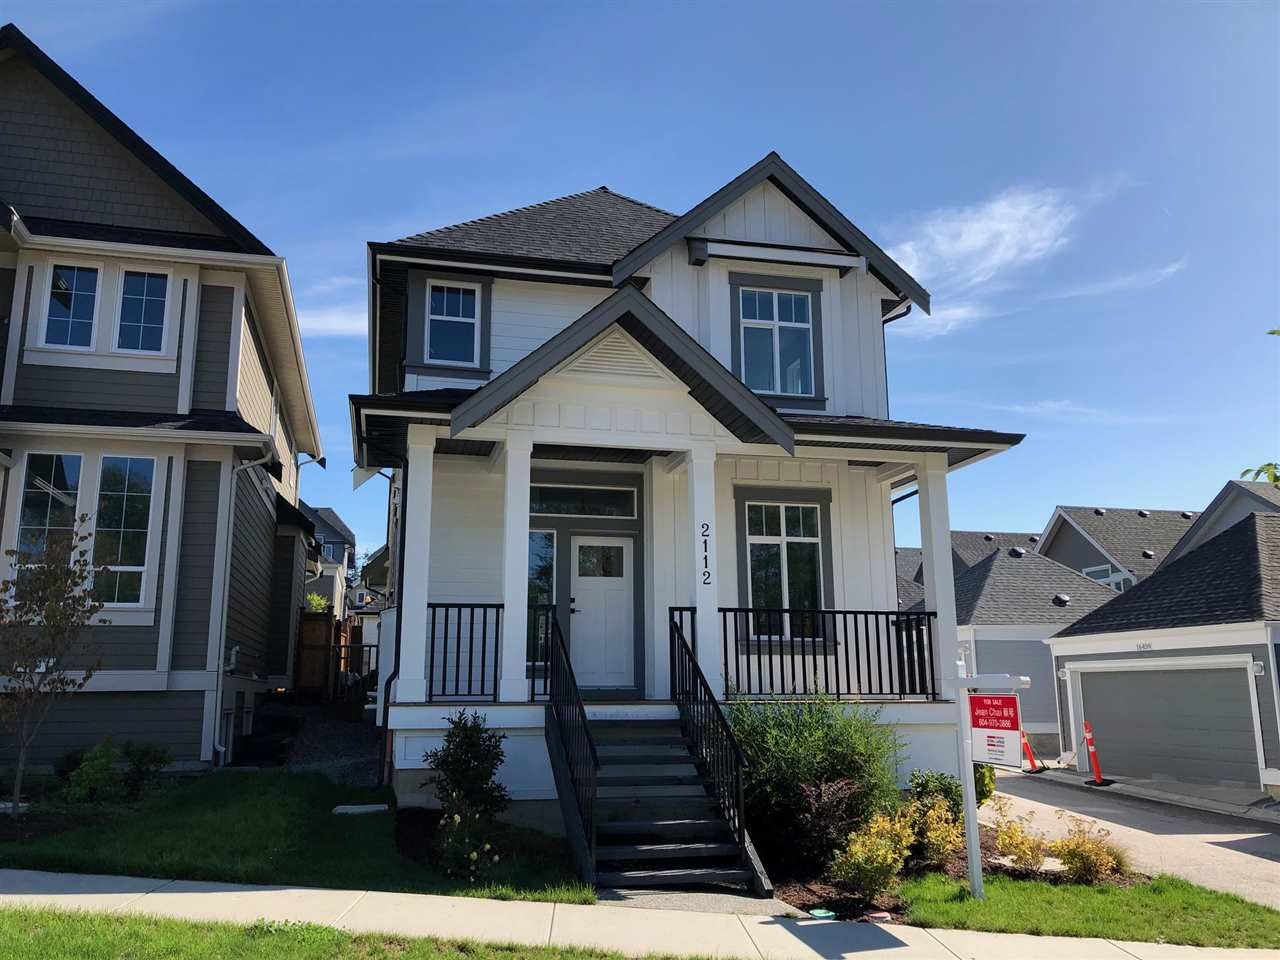 """Main Photo: 2112 164A Street in Surrey: Grandview Surrey House for sale in """"Edgewood Gate"""" (South Surrey White Rock)  : MLS®# R2402309"""